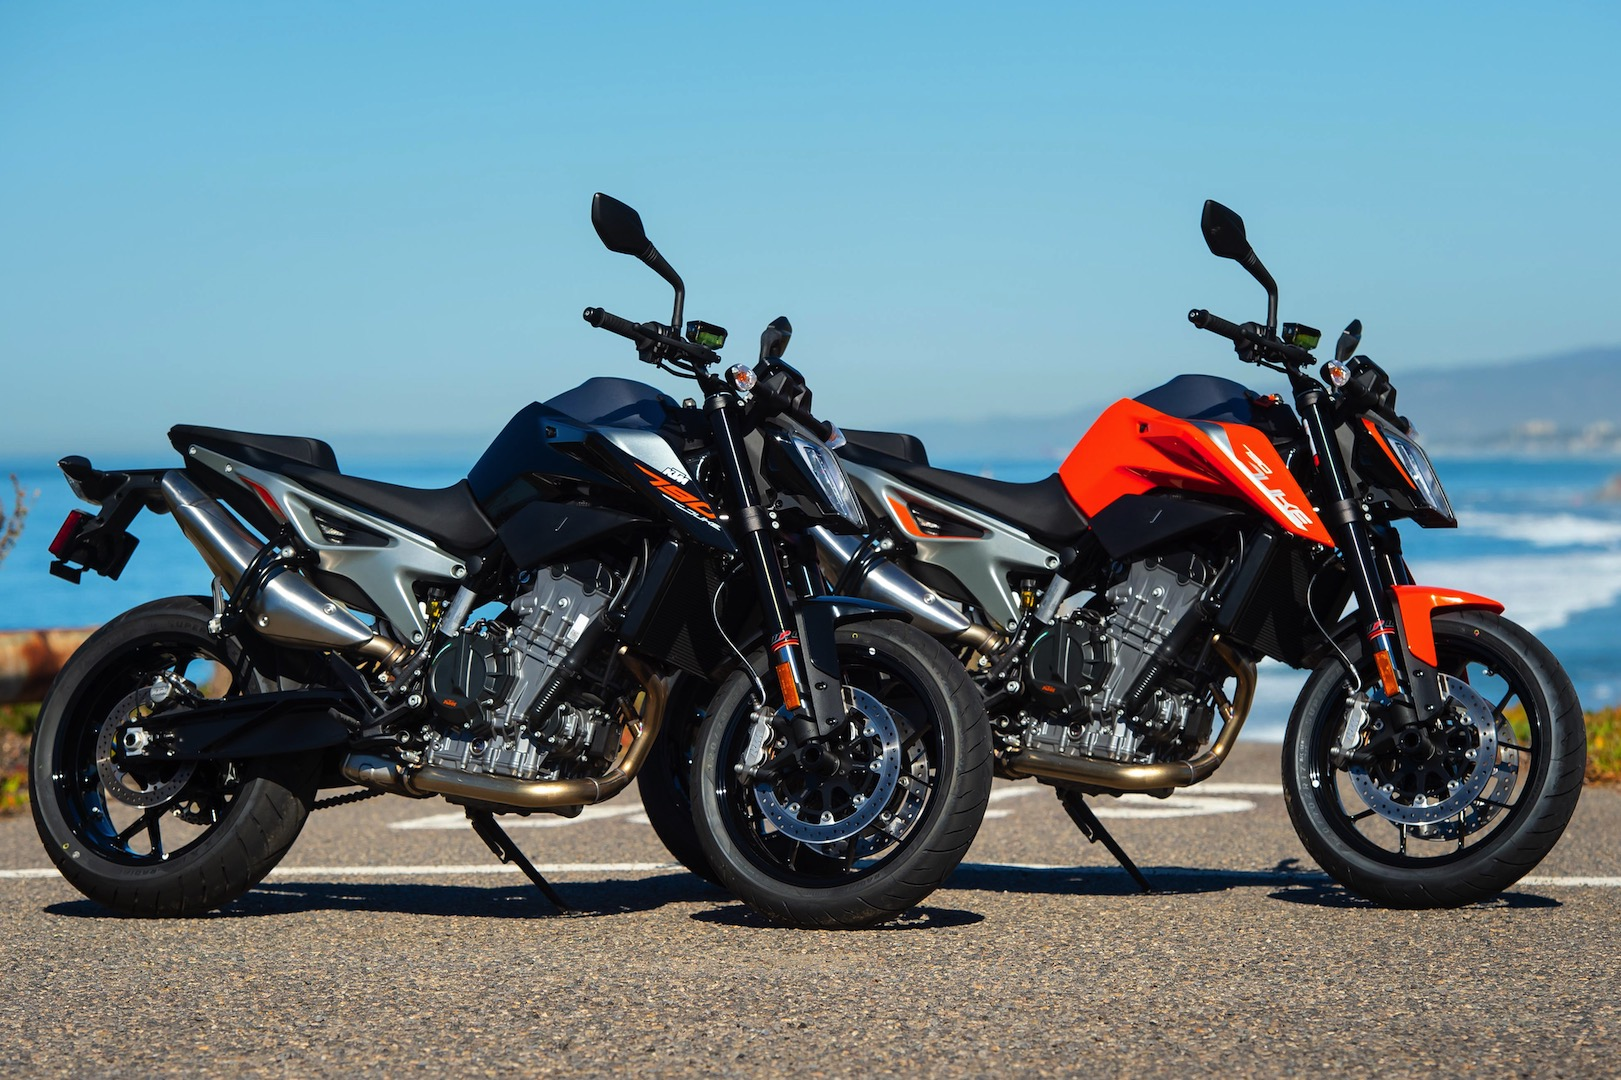 2019 Ktm 790 Duke Review 20 Fast Facts